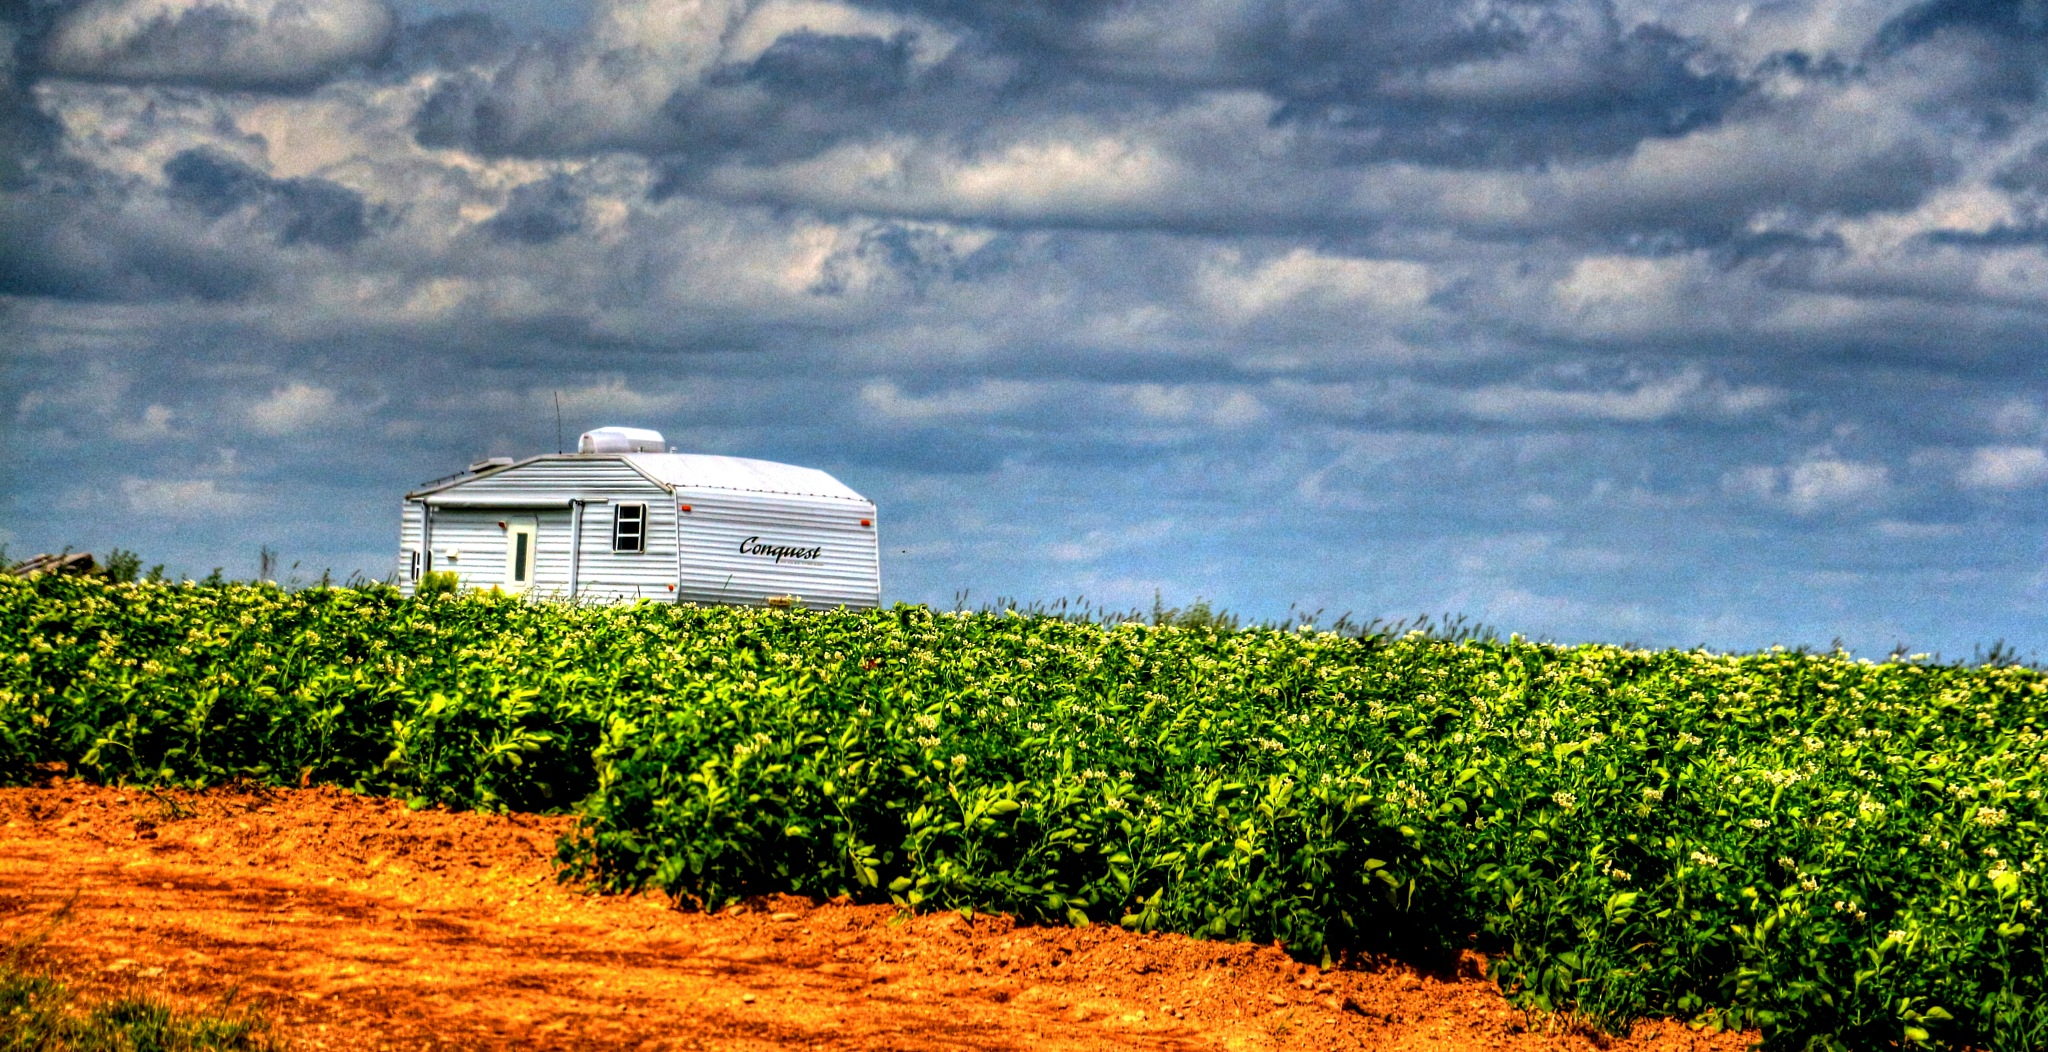 Camping in the potatoe field.. by chefbro53